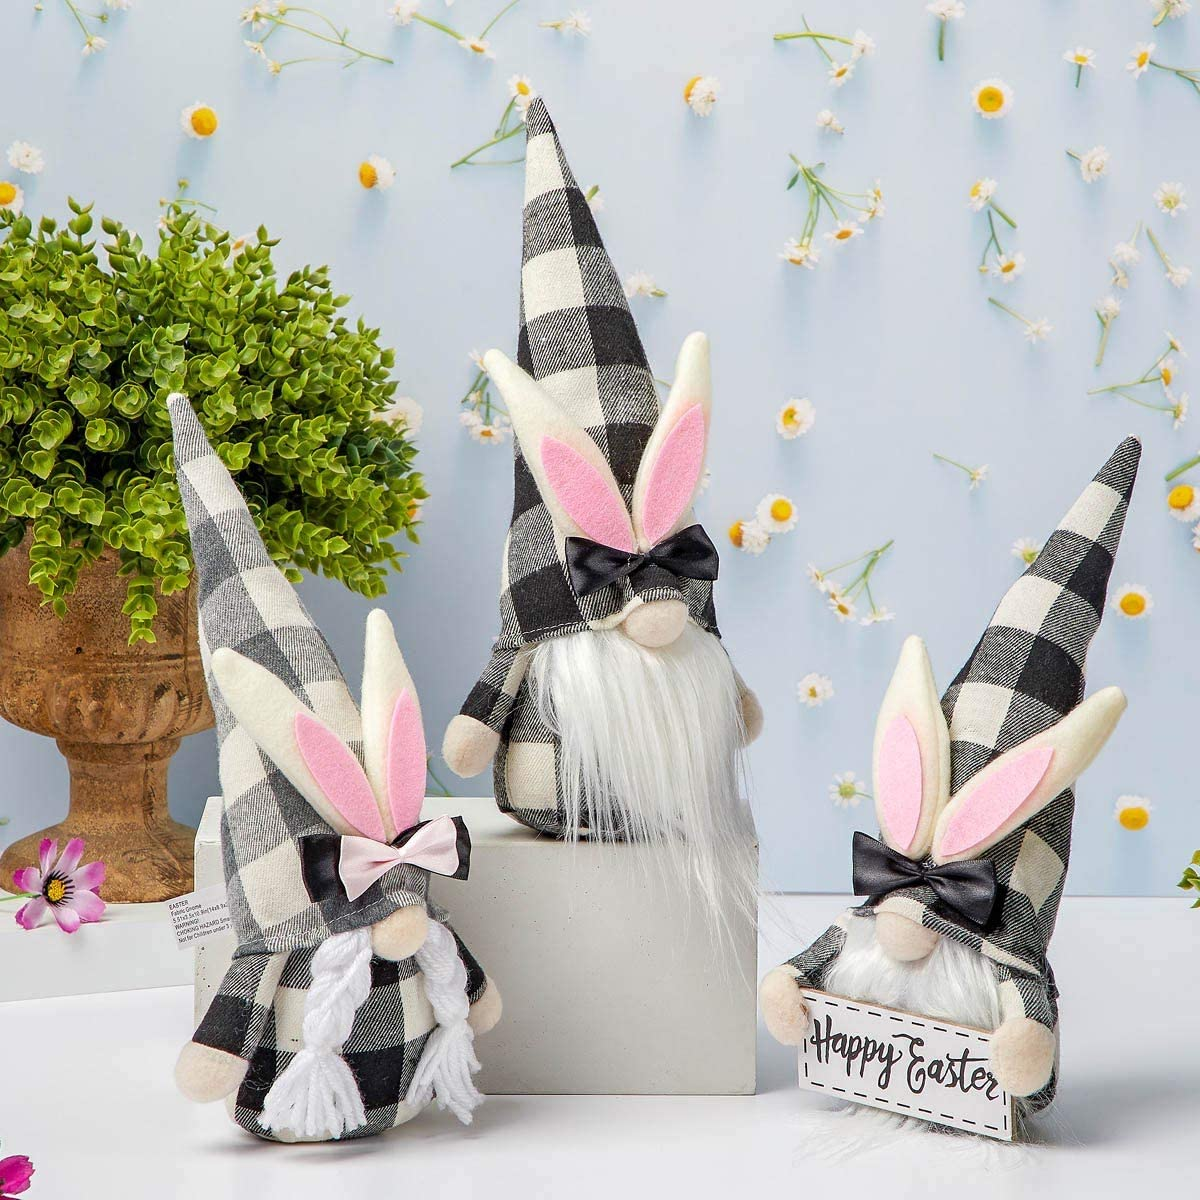 Bunny Gnome Collection Gift Decor - Farmhouse Easter Spring Decor, Tiered Tray Gnomes, Easter Gnome Tray Decorations, Easter Gift Home Decor, Set of 3